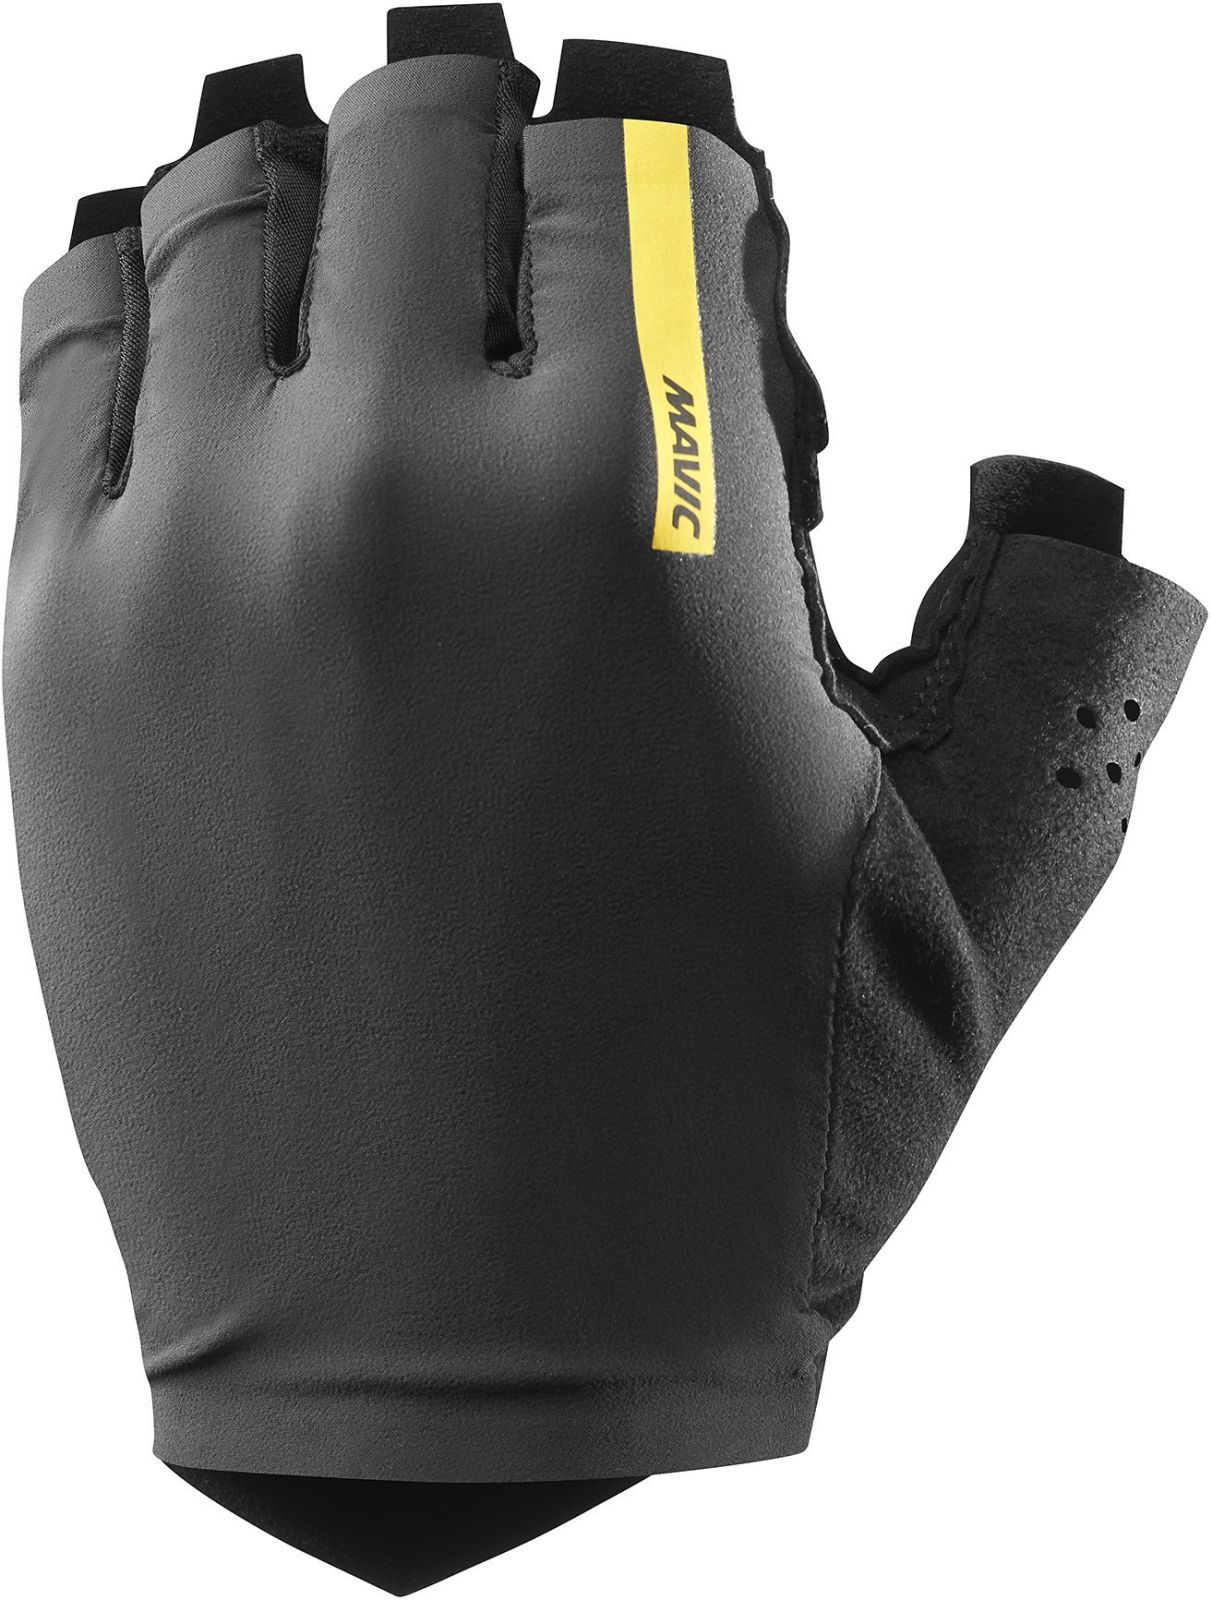 Mavic Cosmic Pro Glove - Black/Black XL